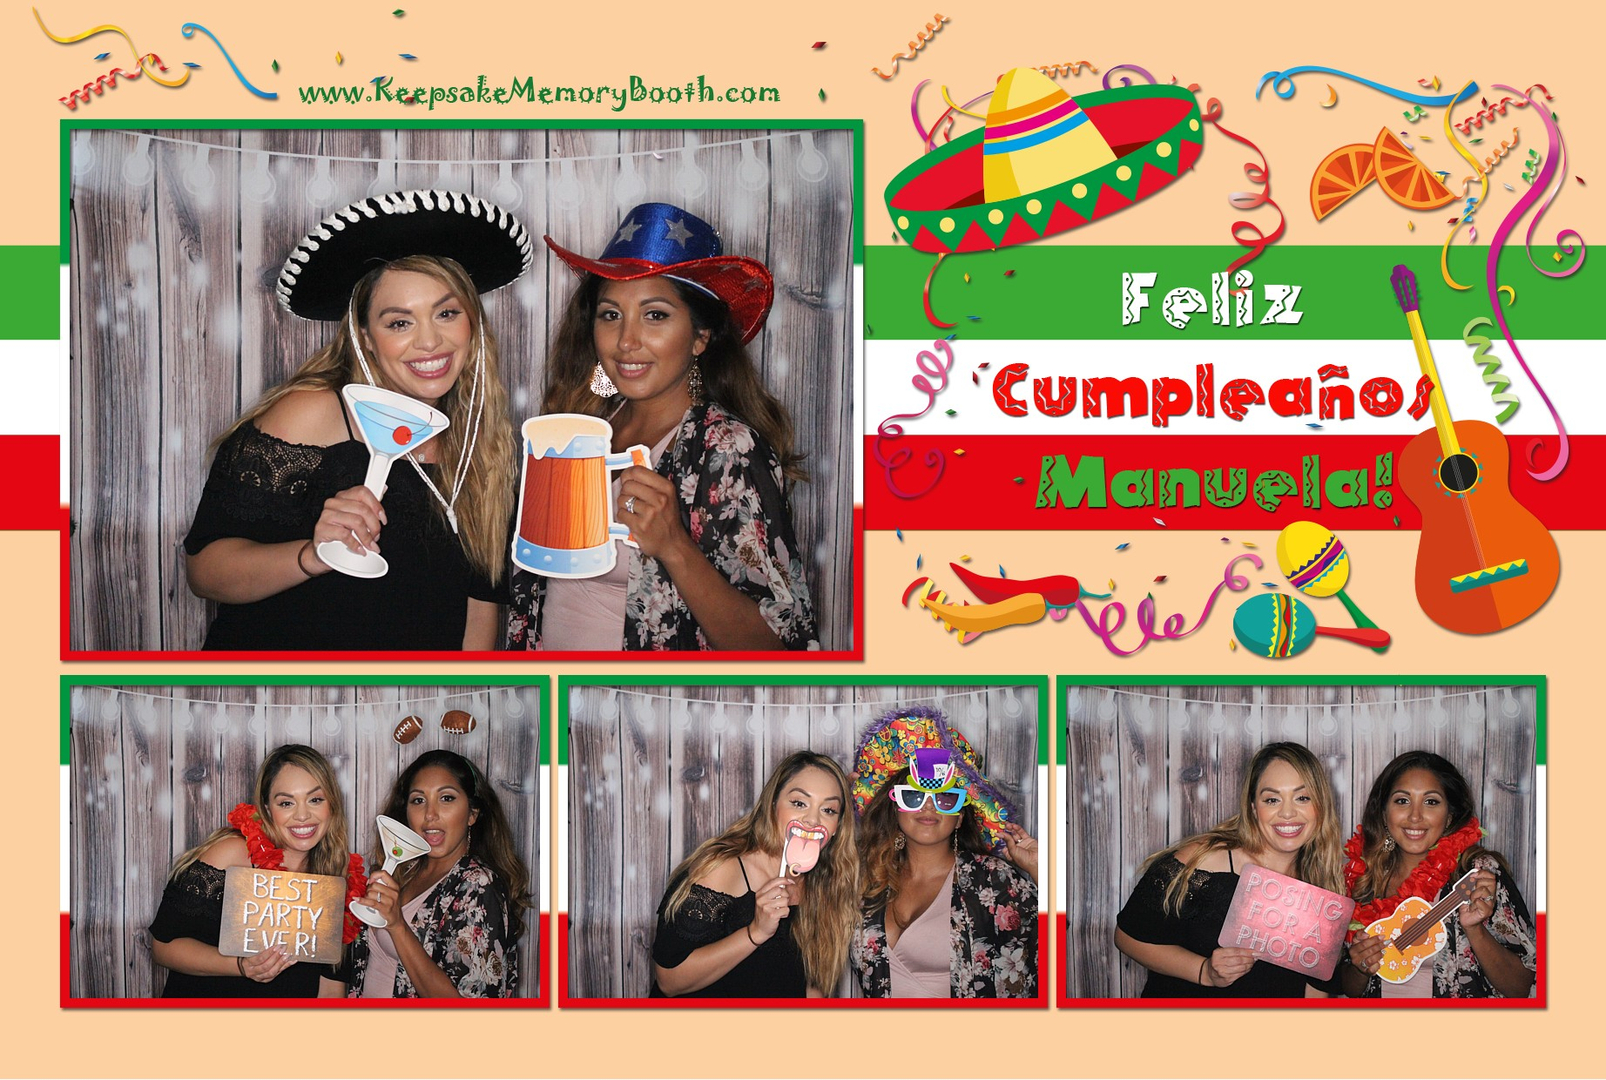 Photo Booth Rental San Diego - Keepsake Memory Booth